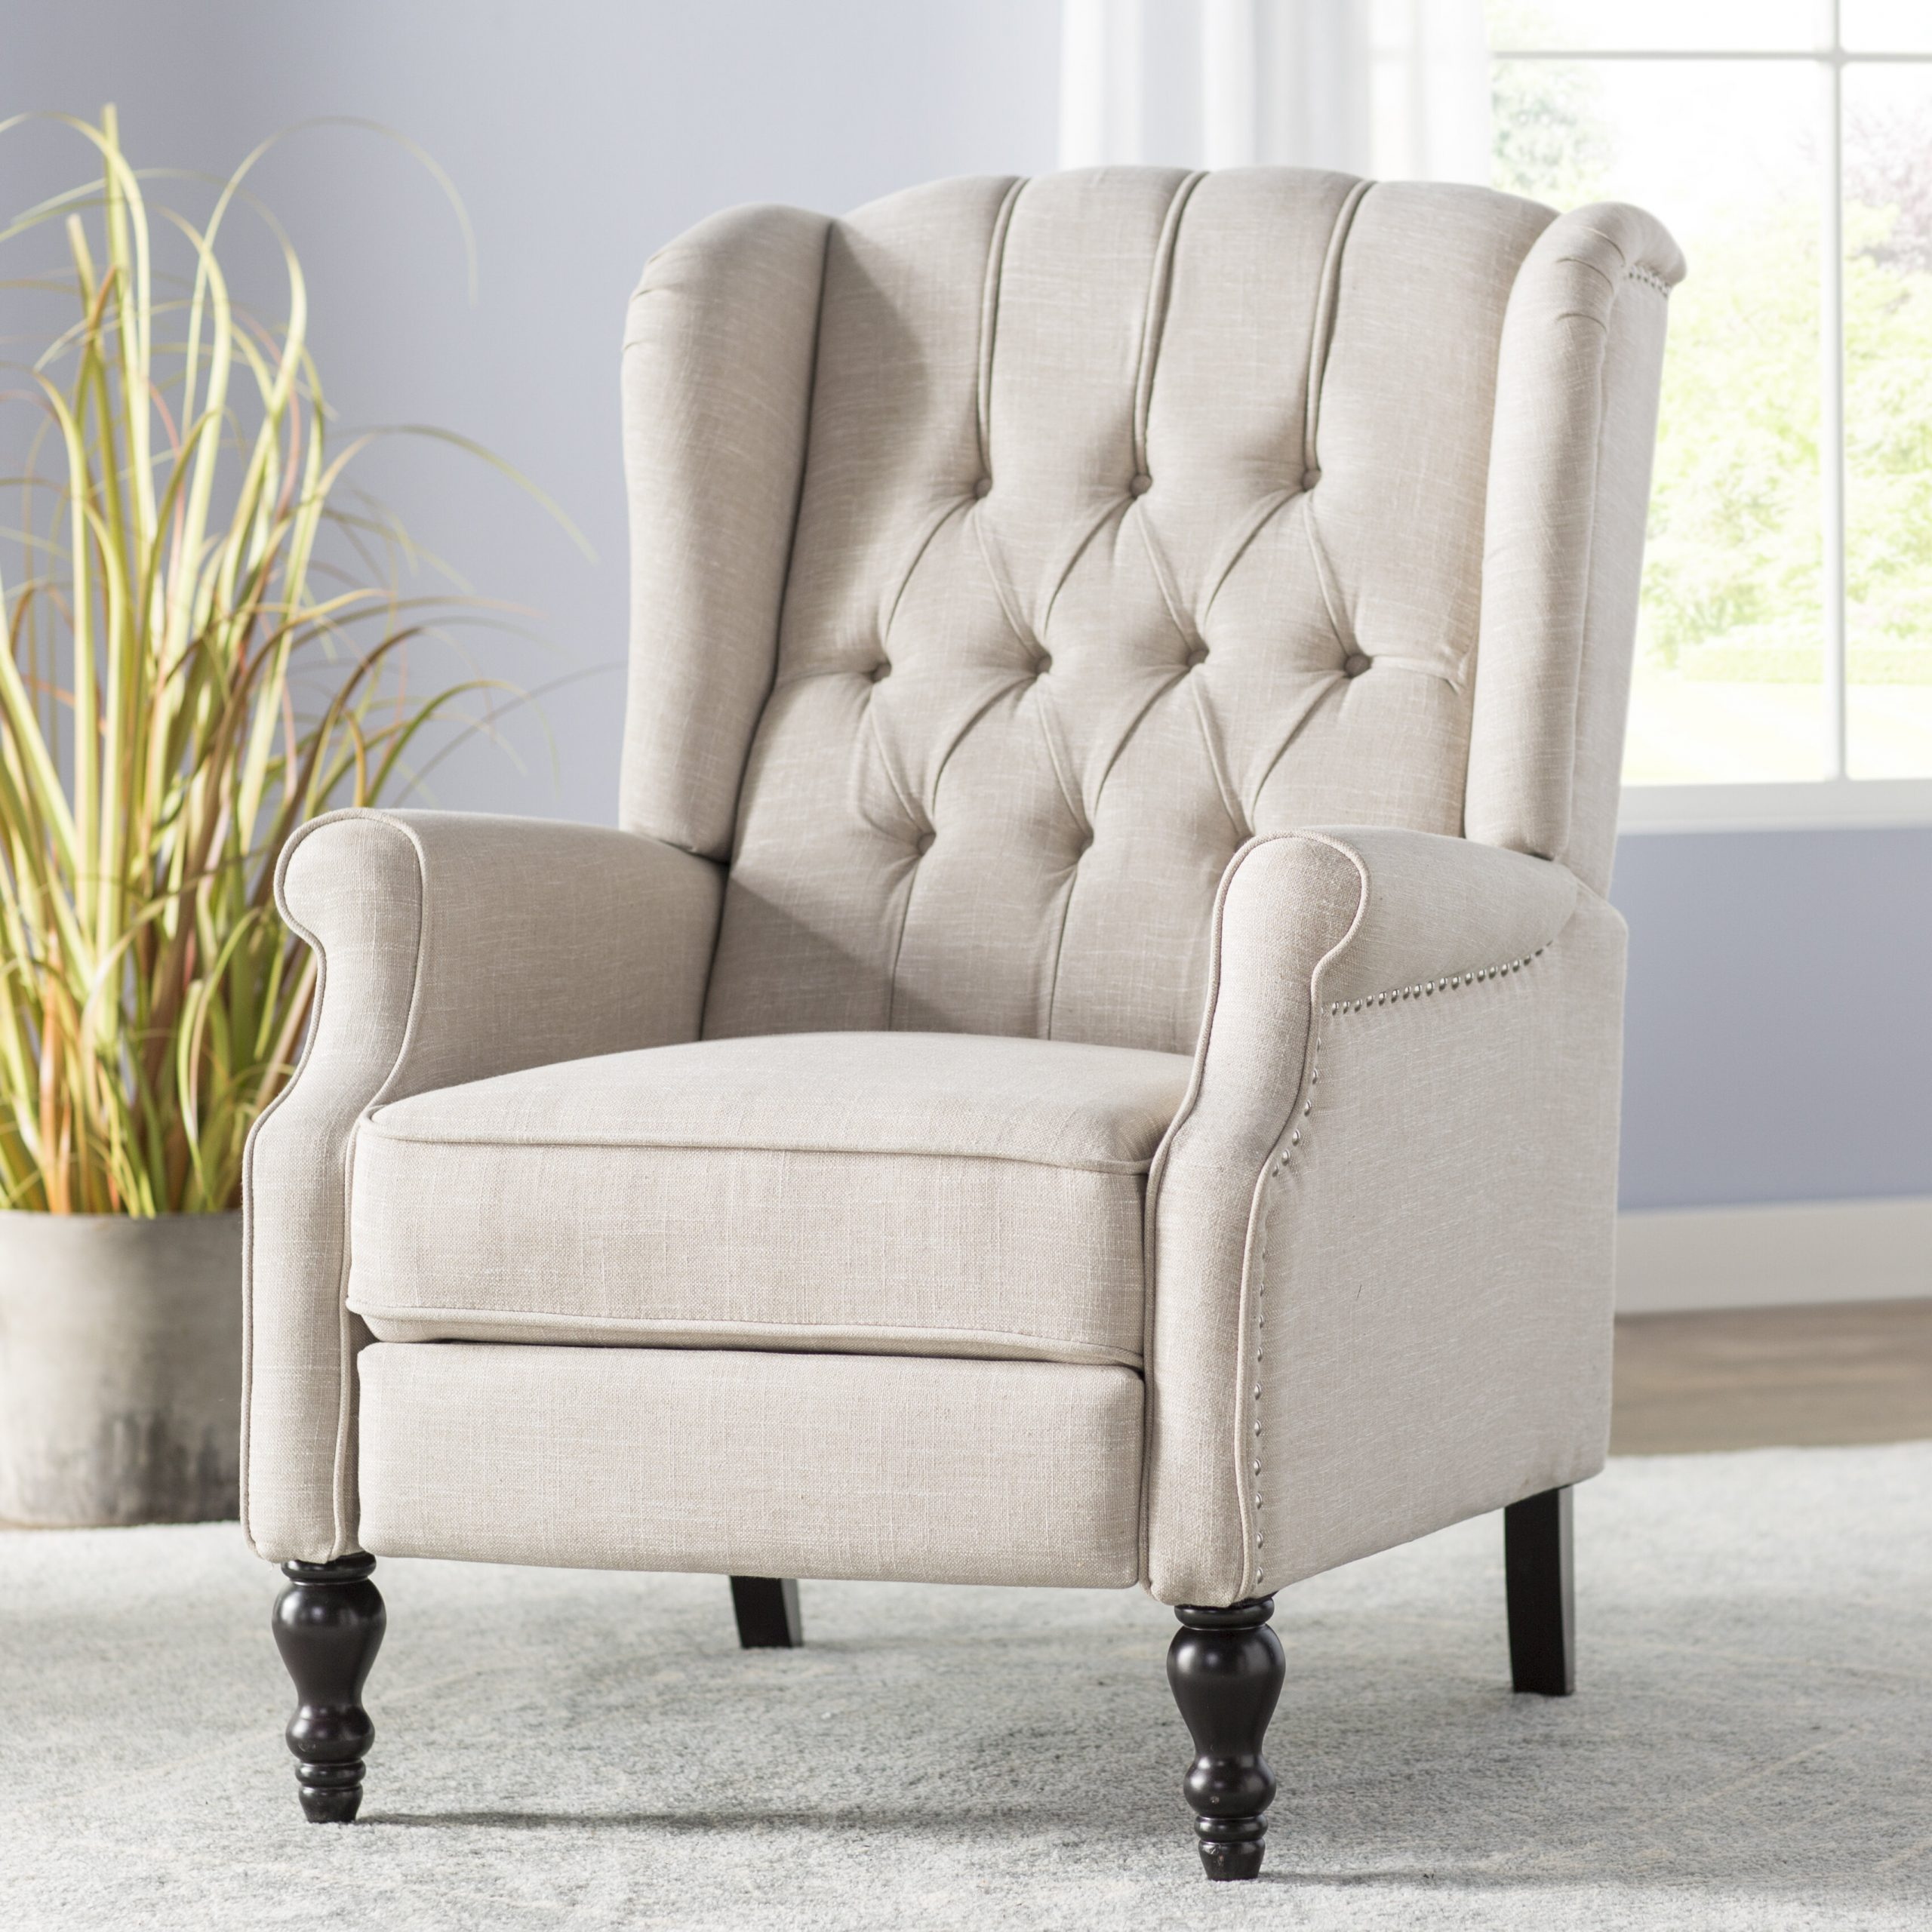 Leonie Manual Recliner With Andover Wingback Chairs (View 10 of 15)